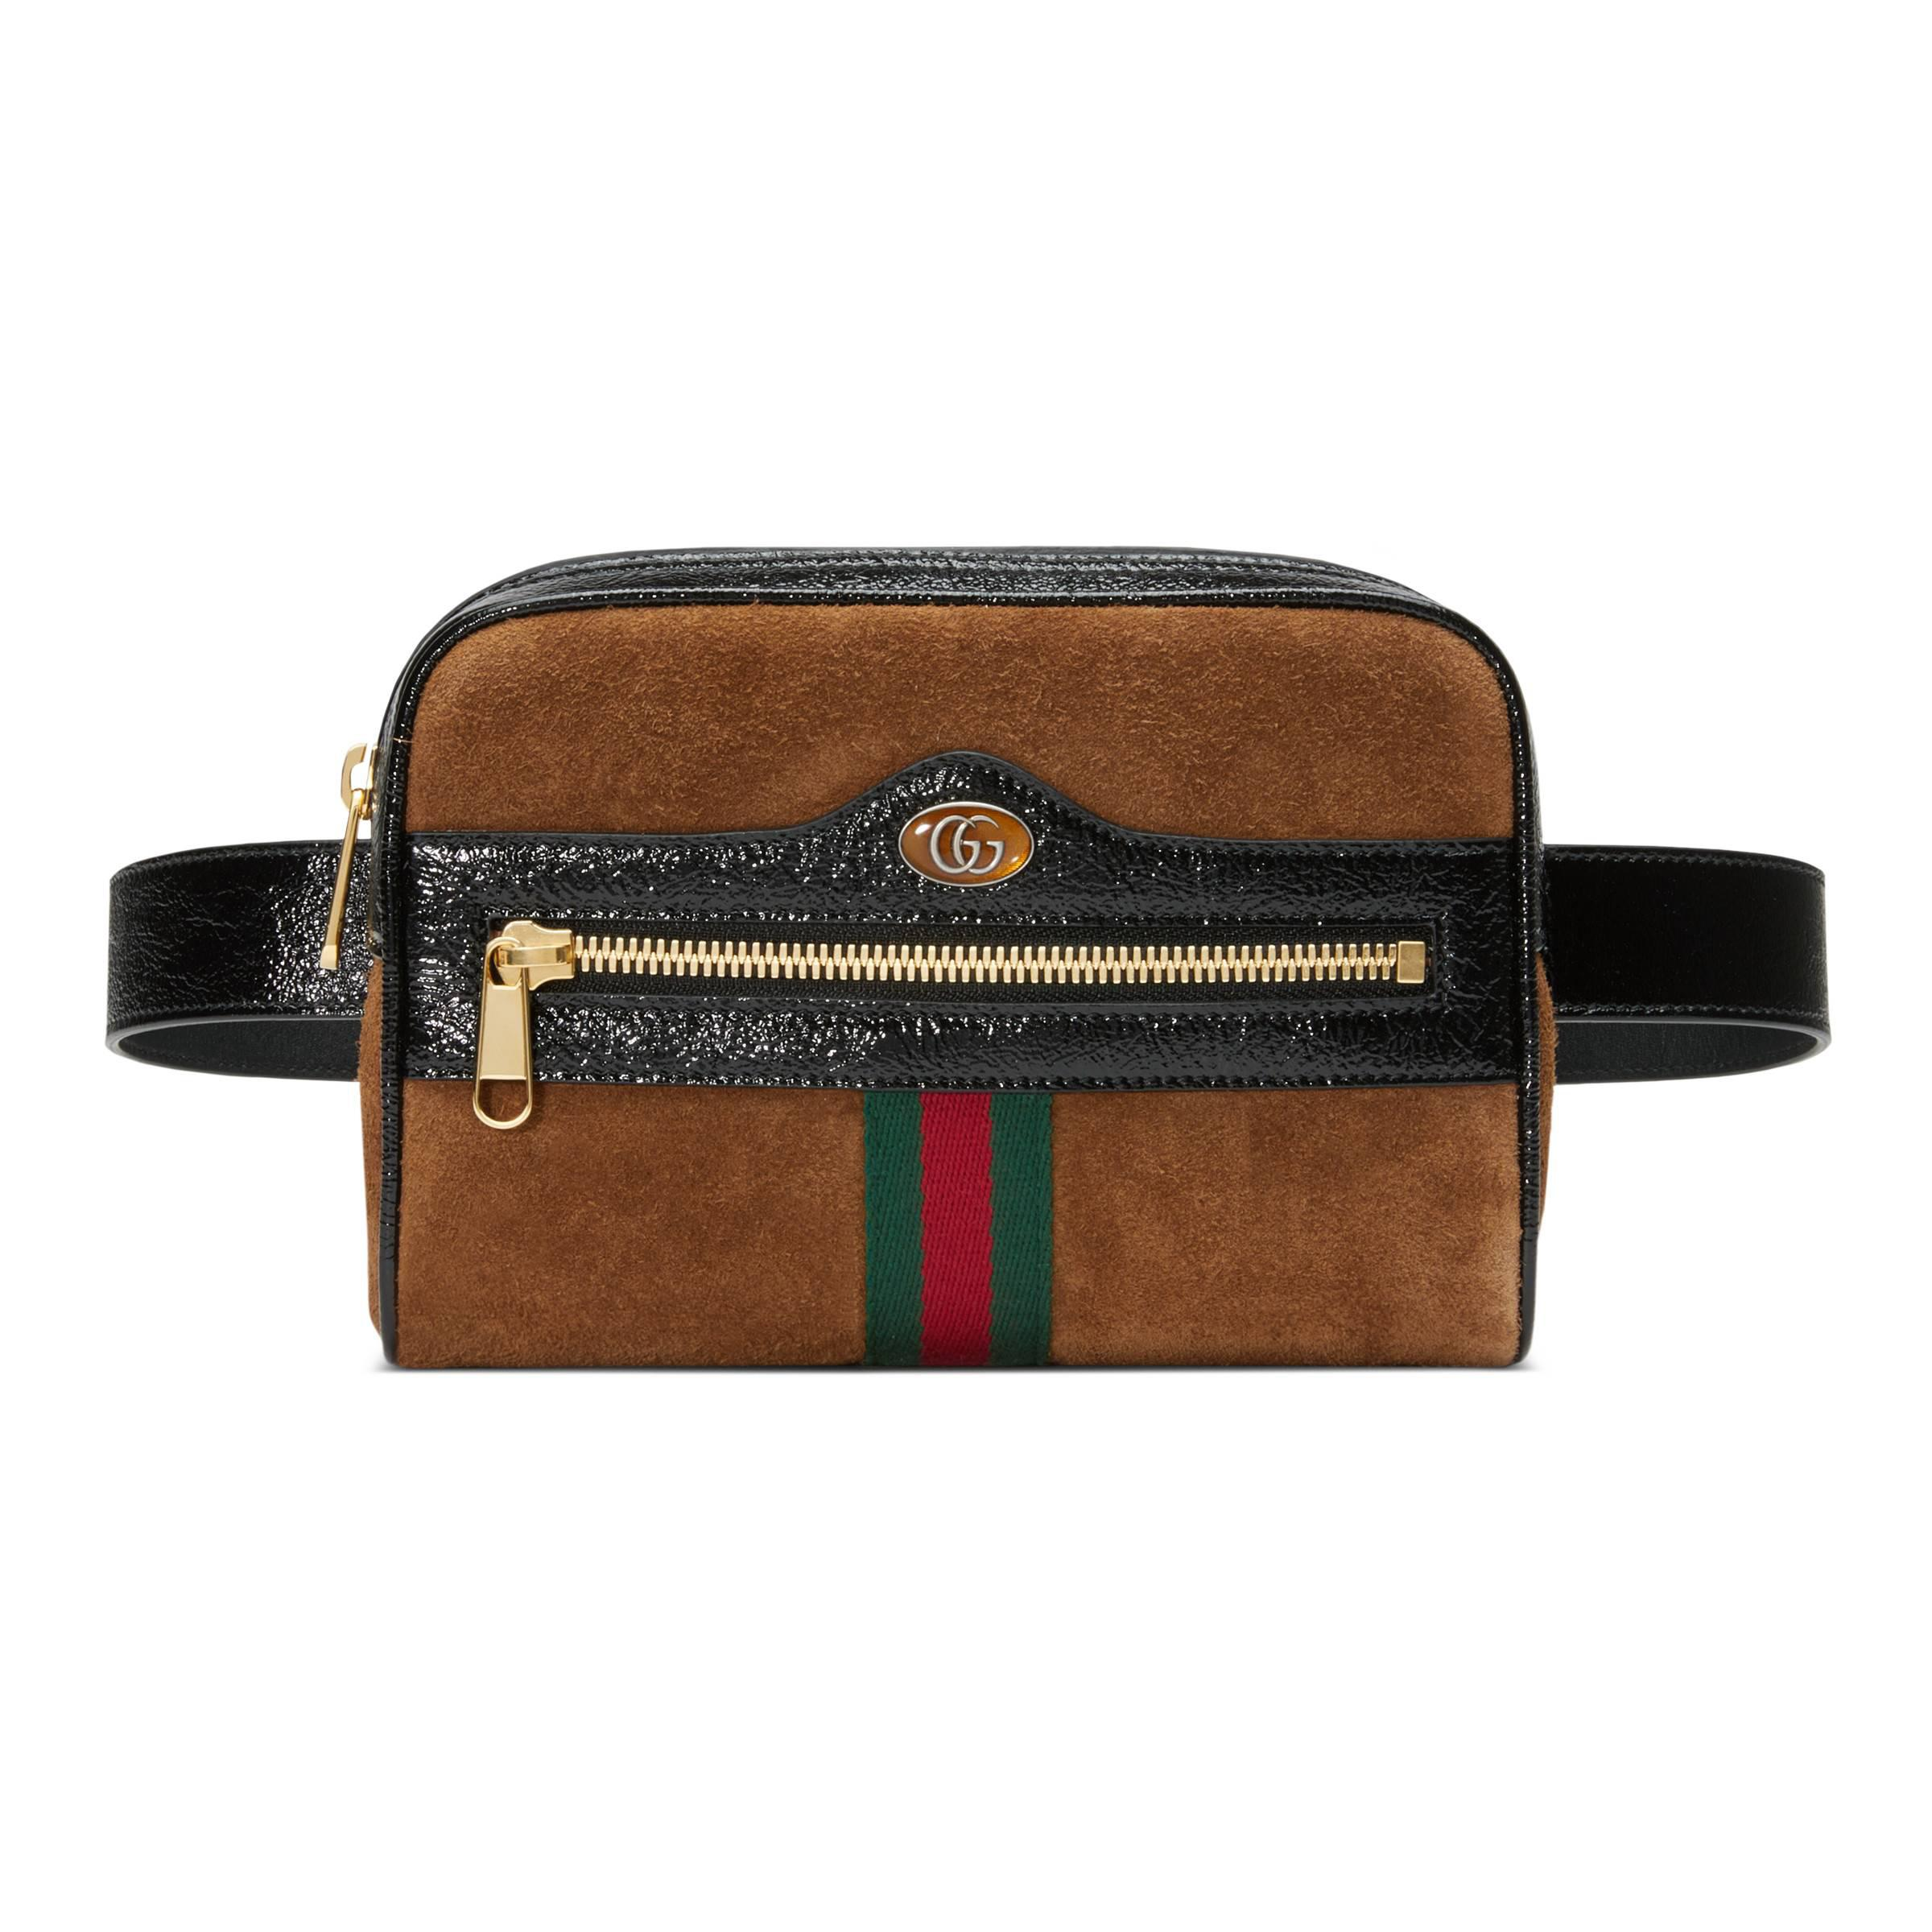 7c87c0ea5 ... Brown Ophidia Small Belt Bag - Lyst. Visit Gucci. Tap to visit site